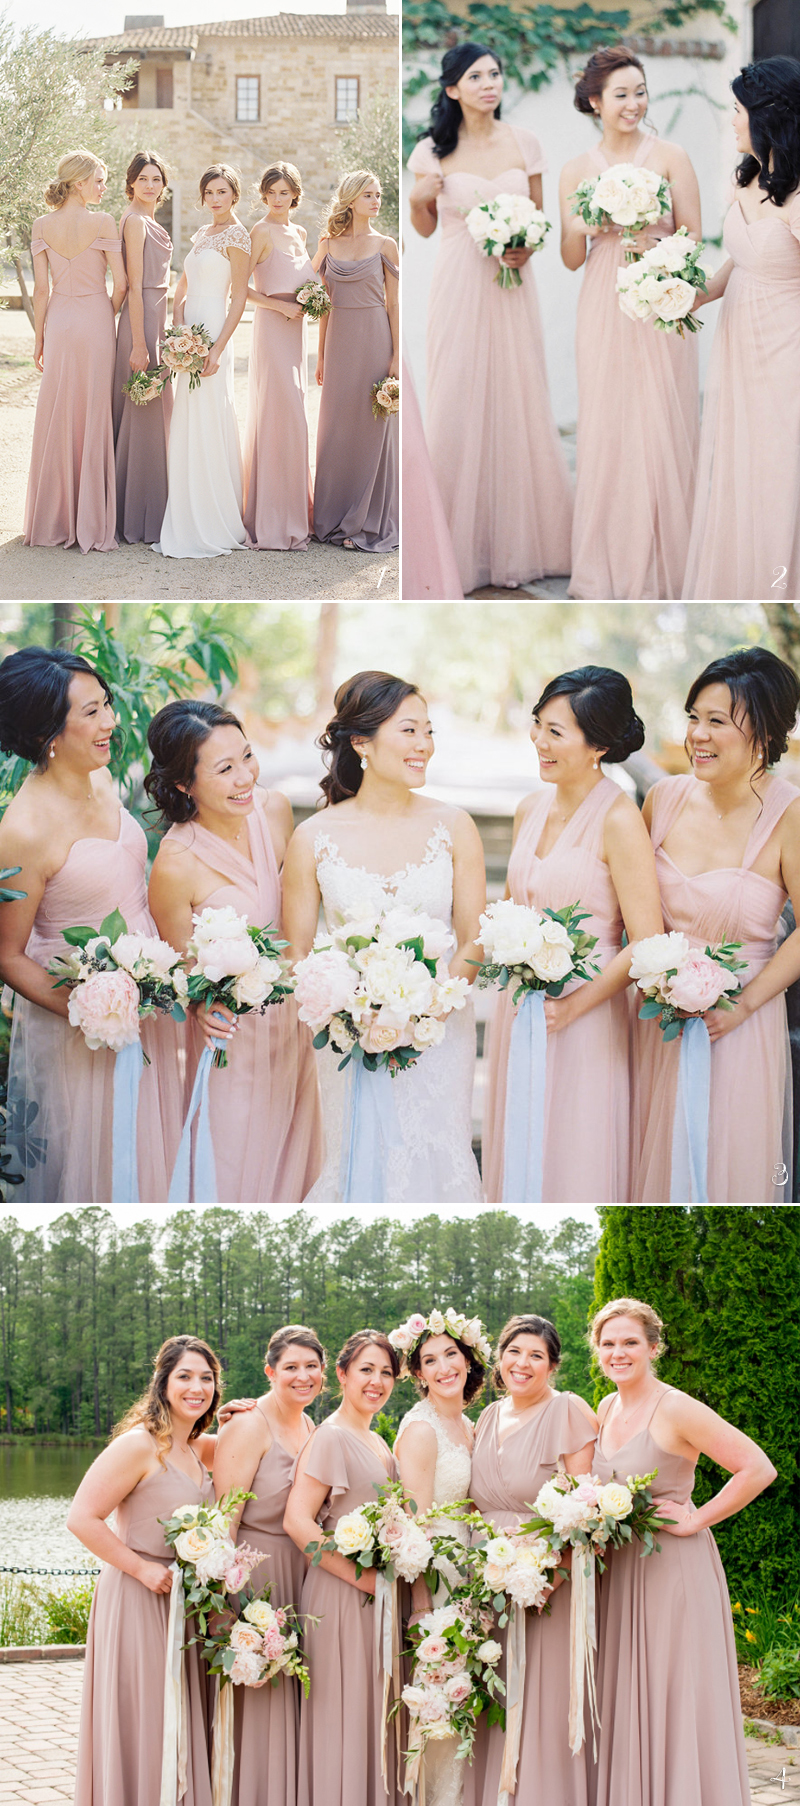 Trend Report 5 Best Bridesmaid Dress Colors For Spring 2018